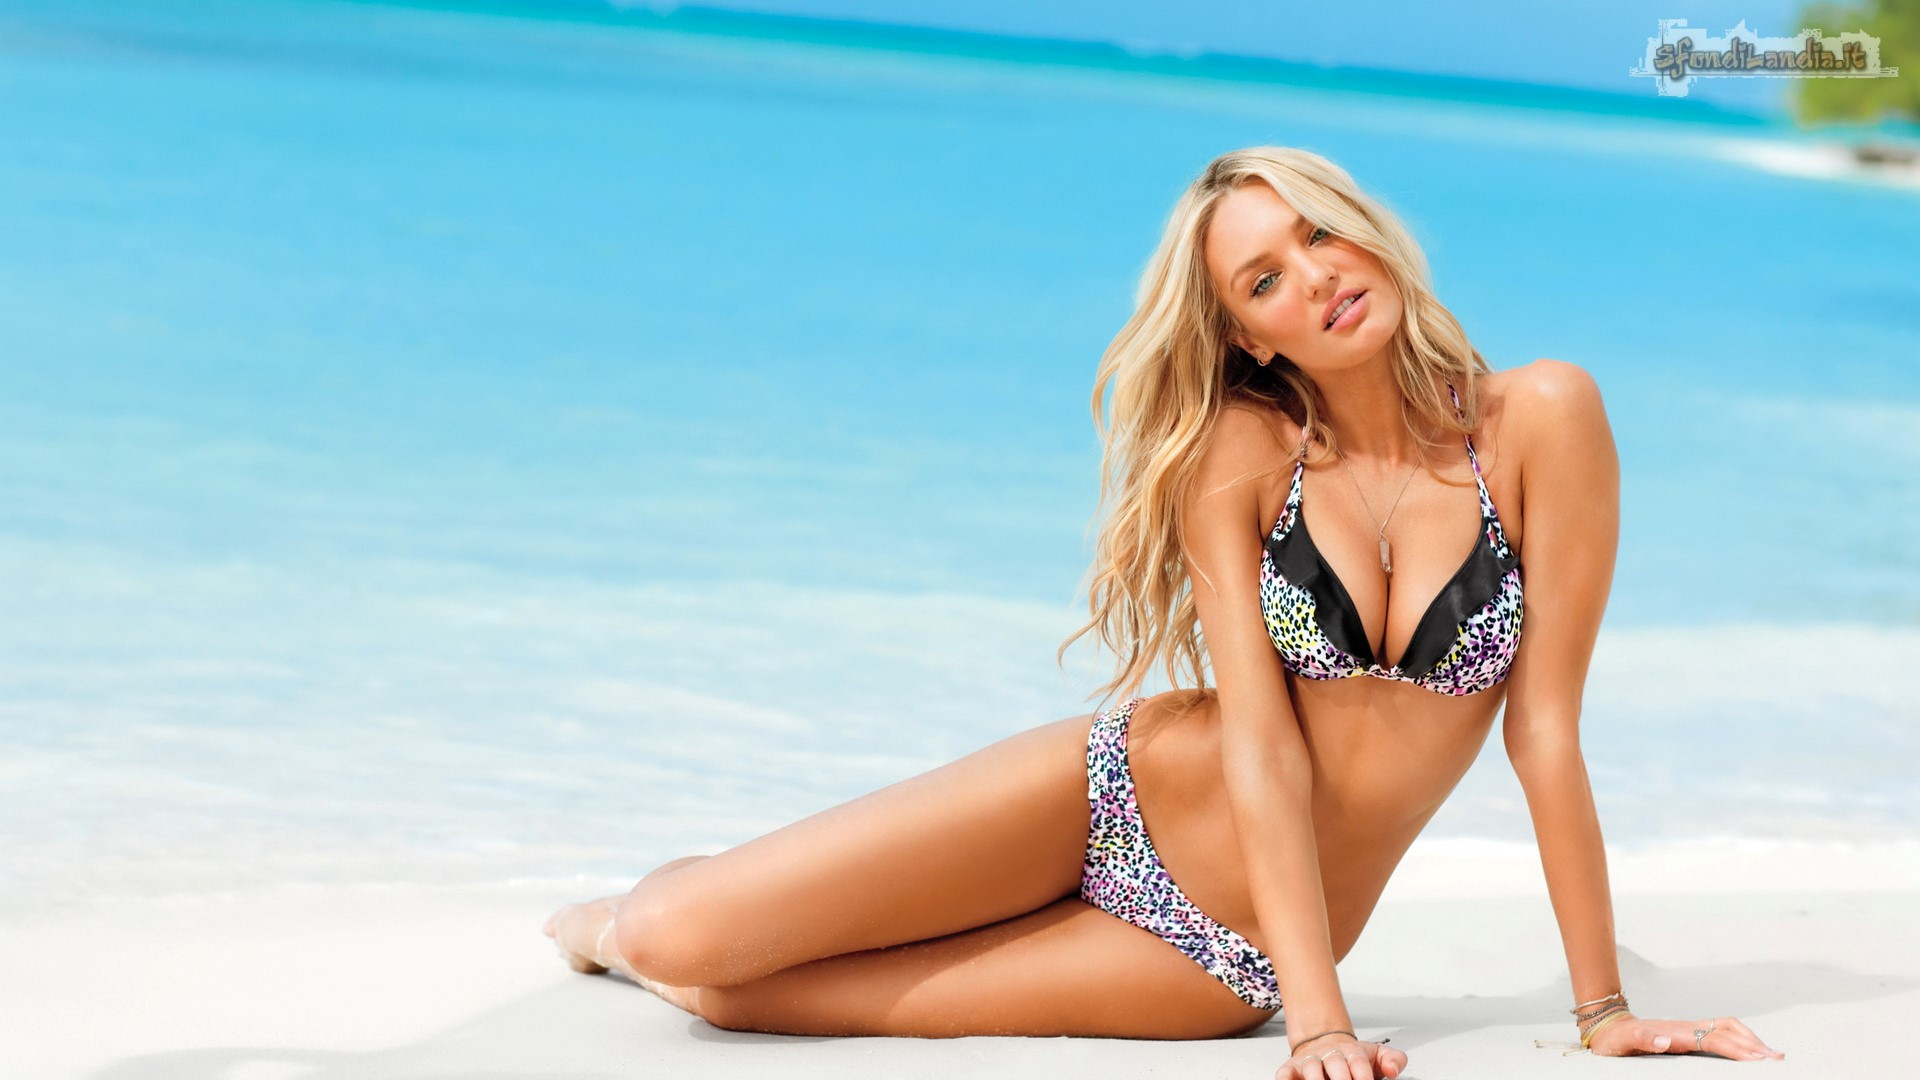 Candice On Beach